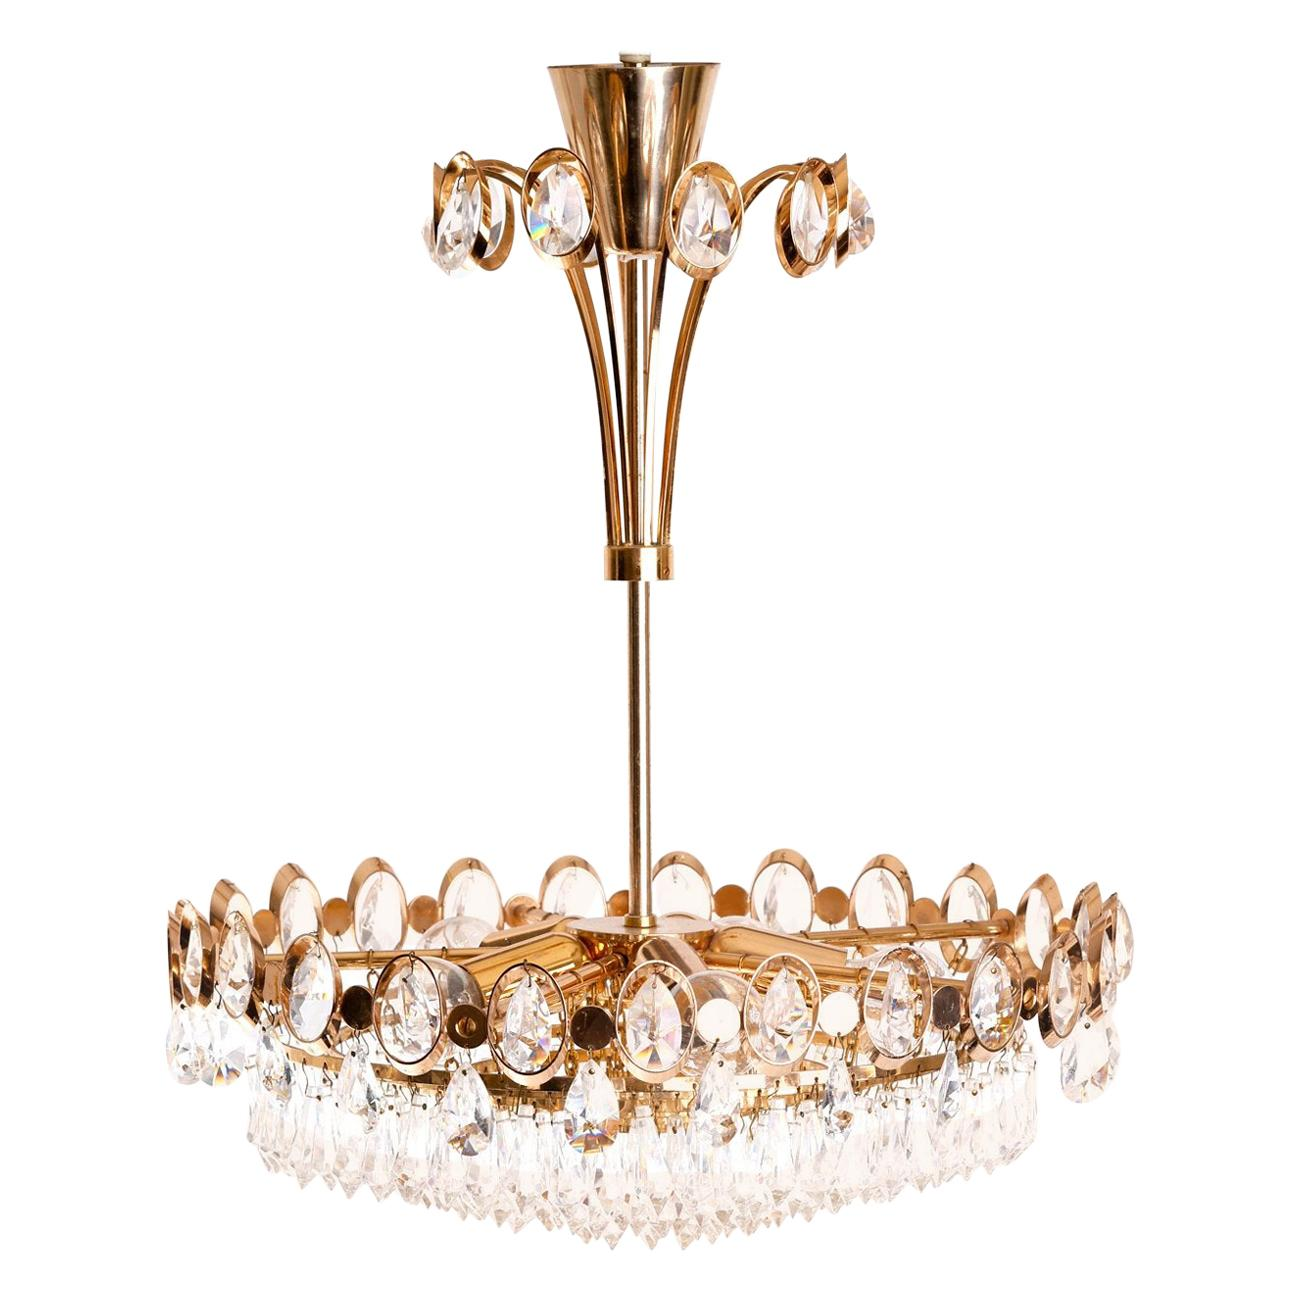 Gold-Plated Crystal Glass Chandelier, 1970s